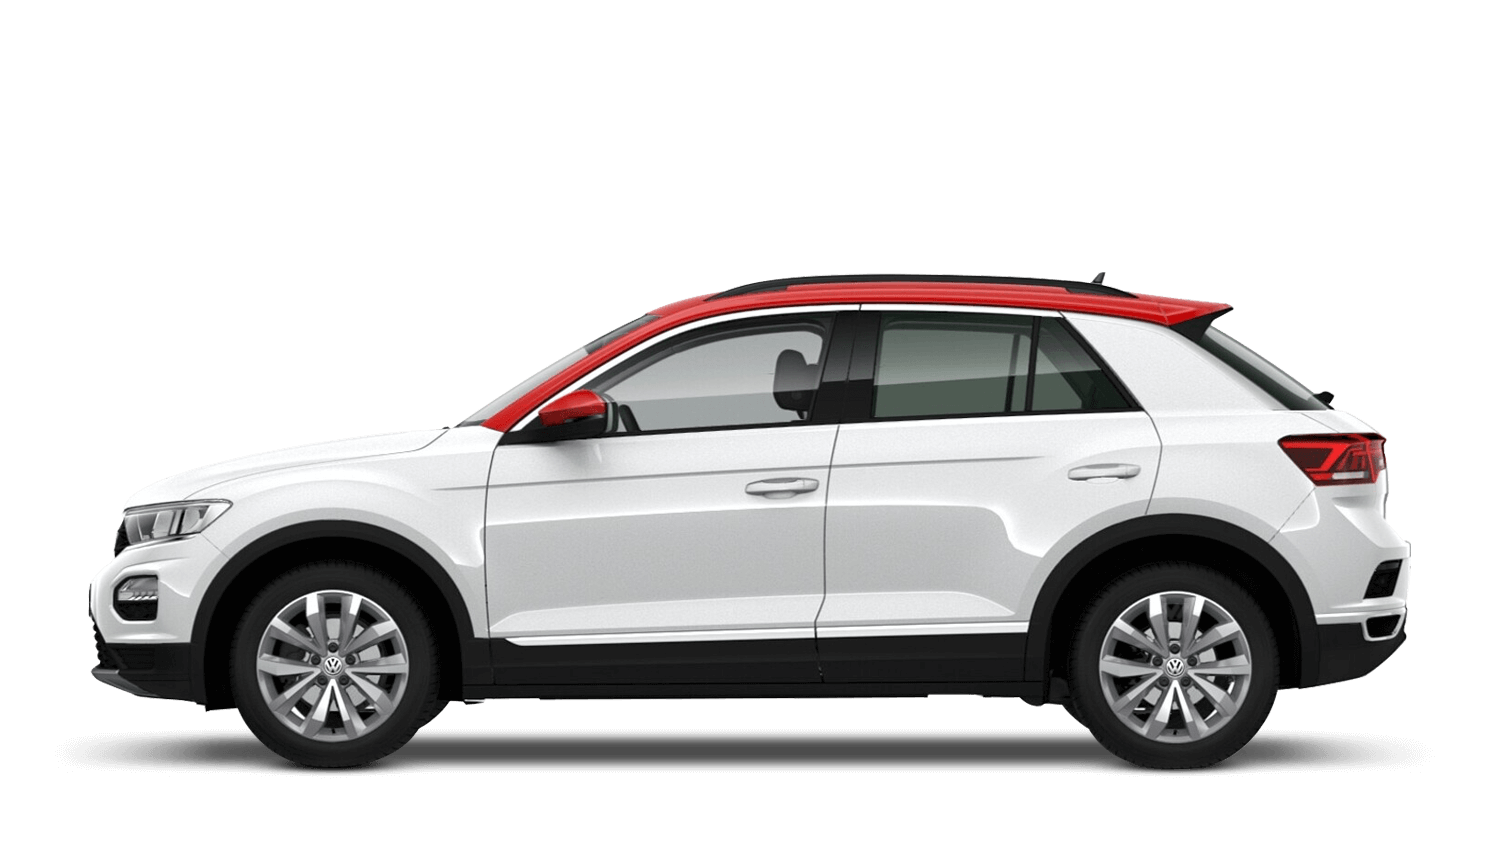 Pure White with Flash Red Roof (Metallic) Volkswagen T Roc